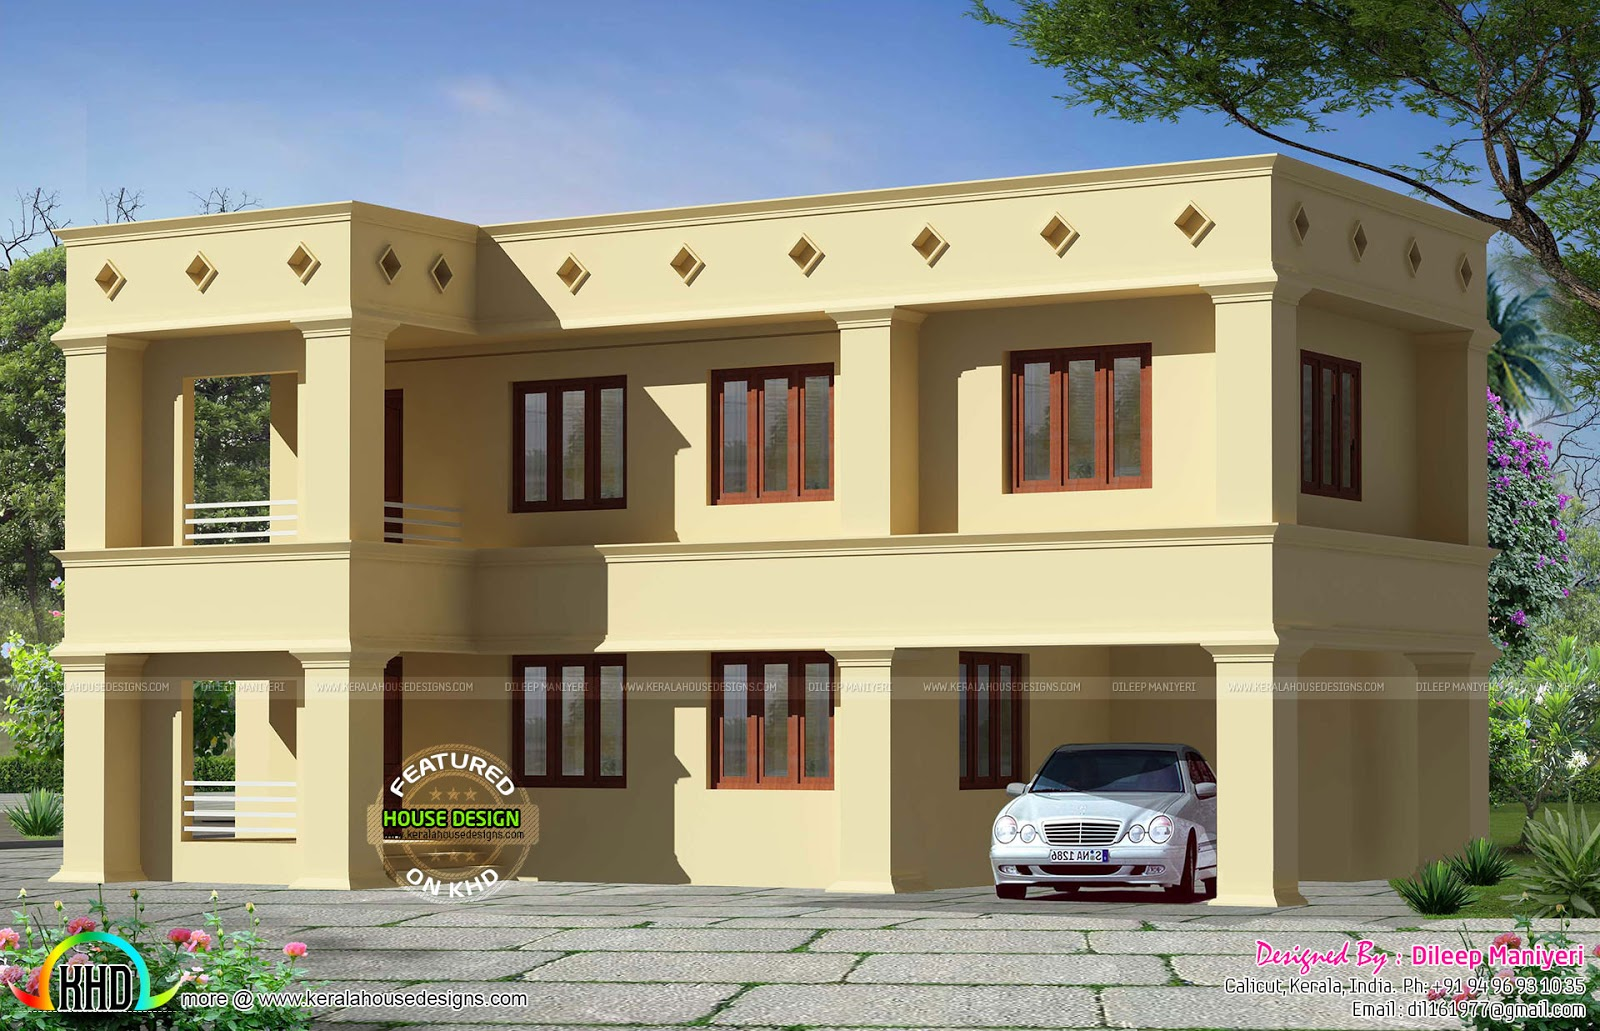 design connection llc house plans home plans house 2018 arab style home in india kerala home design and floor plans